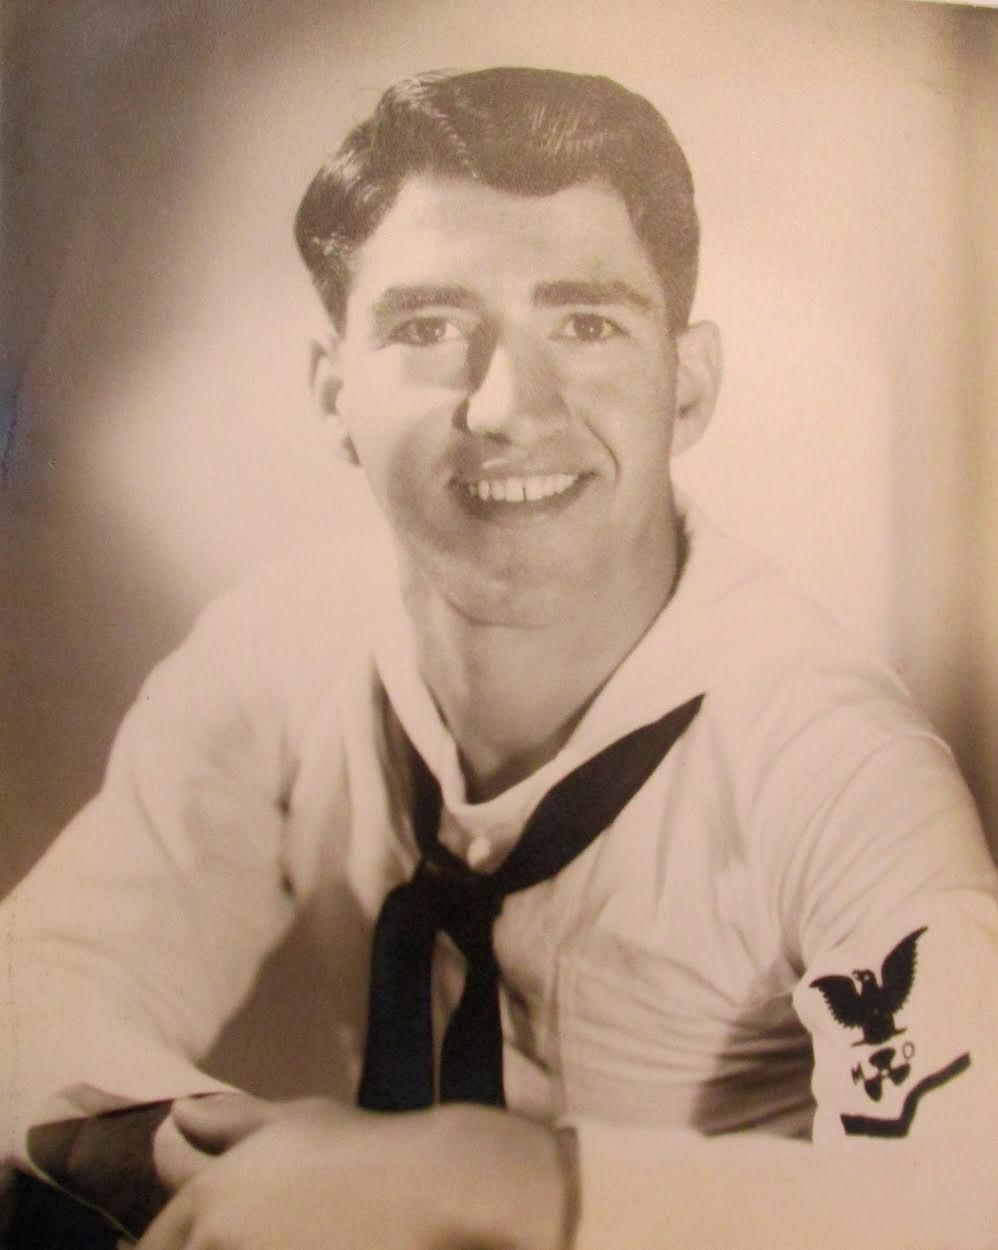 Angelo Yerace was motor machinist aboard Landing Craft Tank at Normandy Invasion in WW II